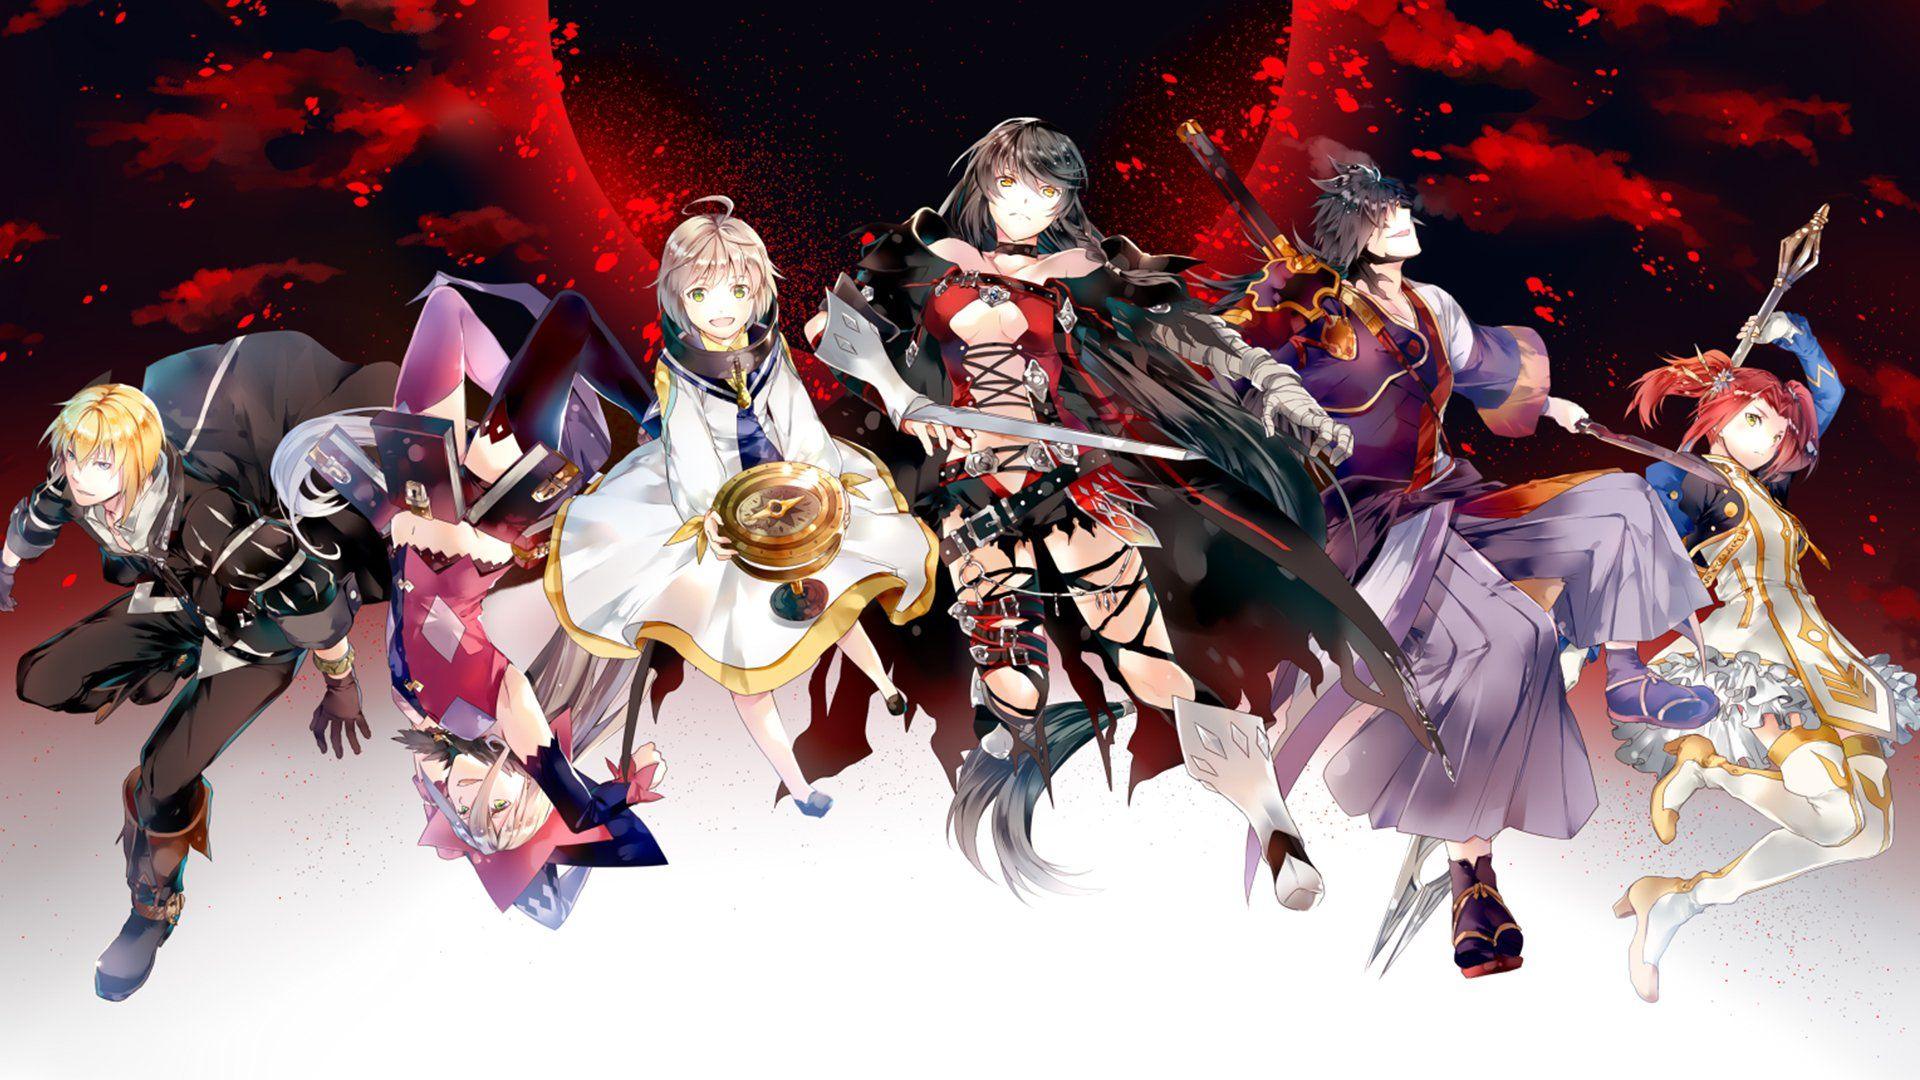 1920x1080 Tales Of Berseria Wallpaper Background Image View